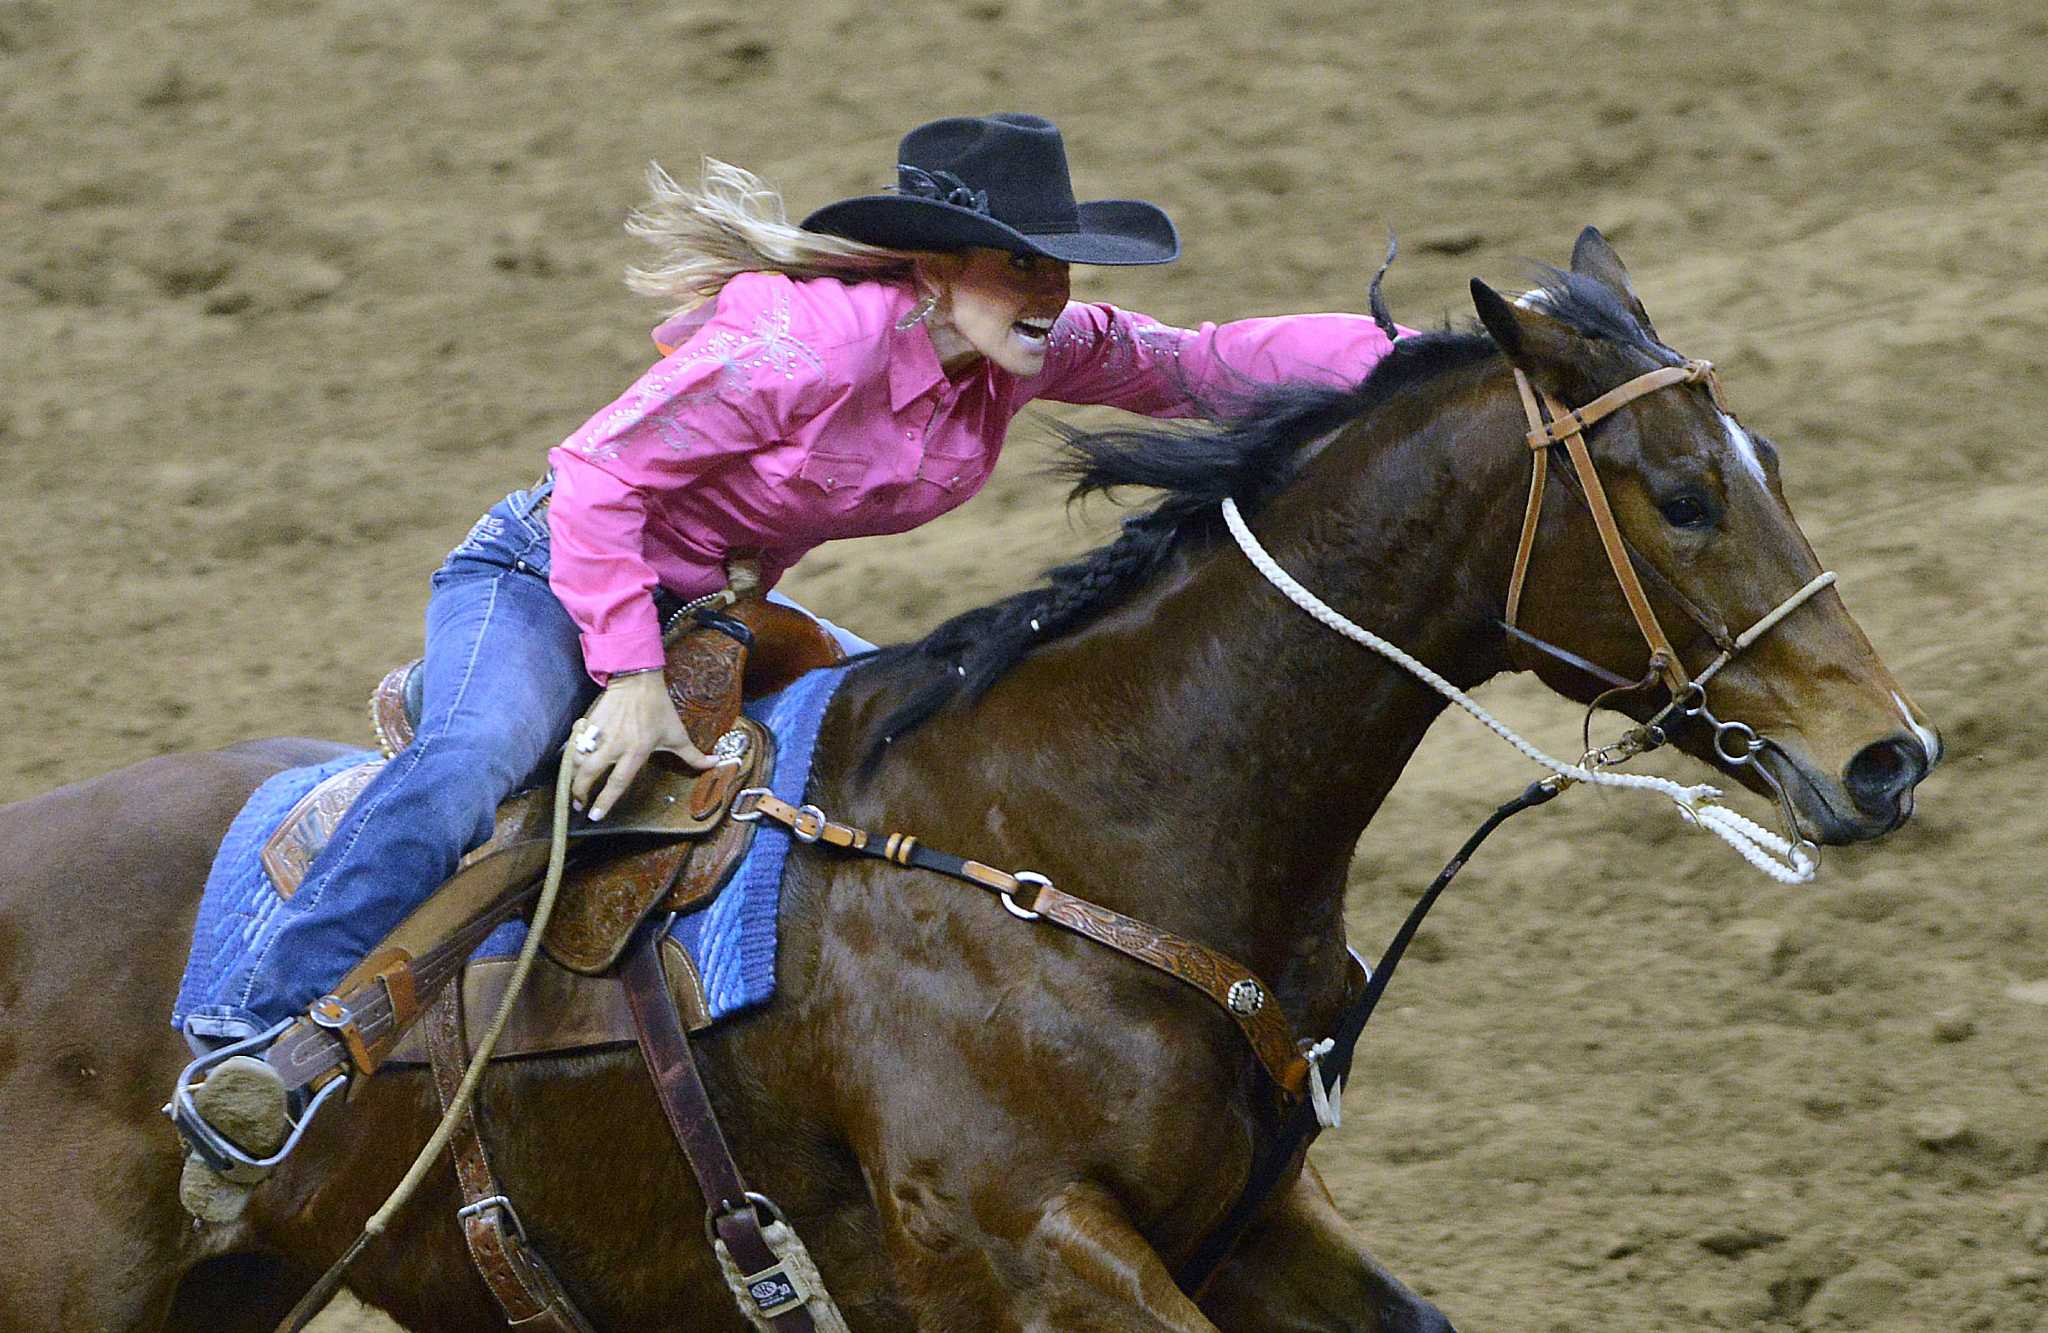 Barrel racing clothing stores